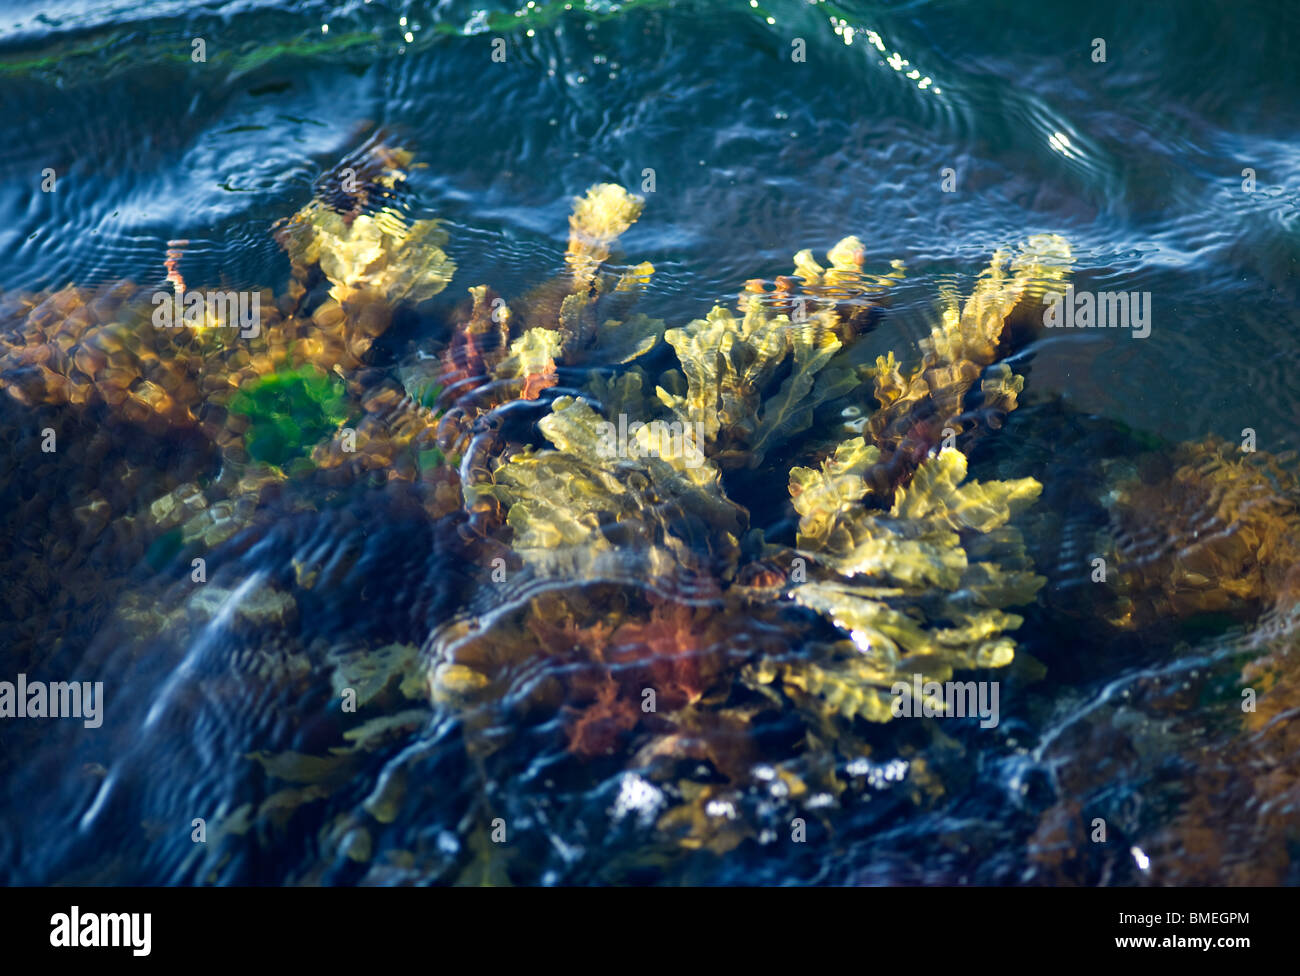 Scandinavia, Sweden, Halland, Vastkusten, View of algae - Stock Image